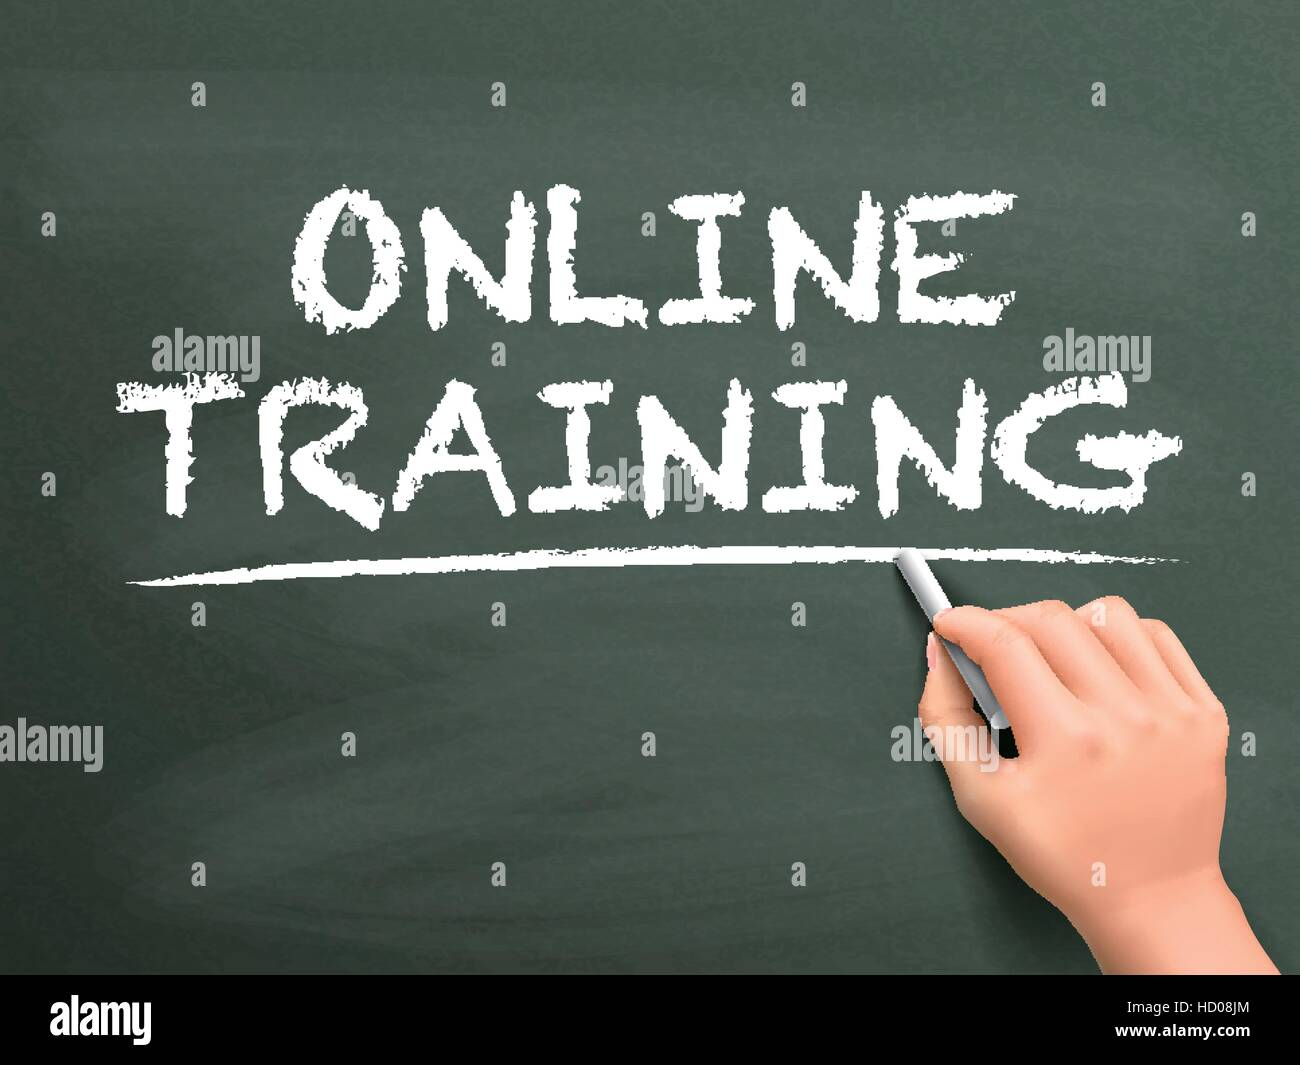 Online Learning Written Hand 3d Stock Photos & Online Learning